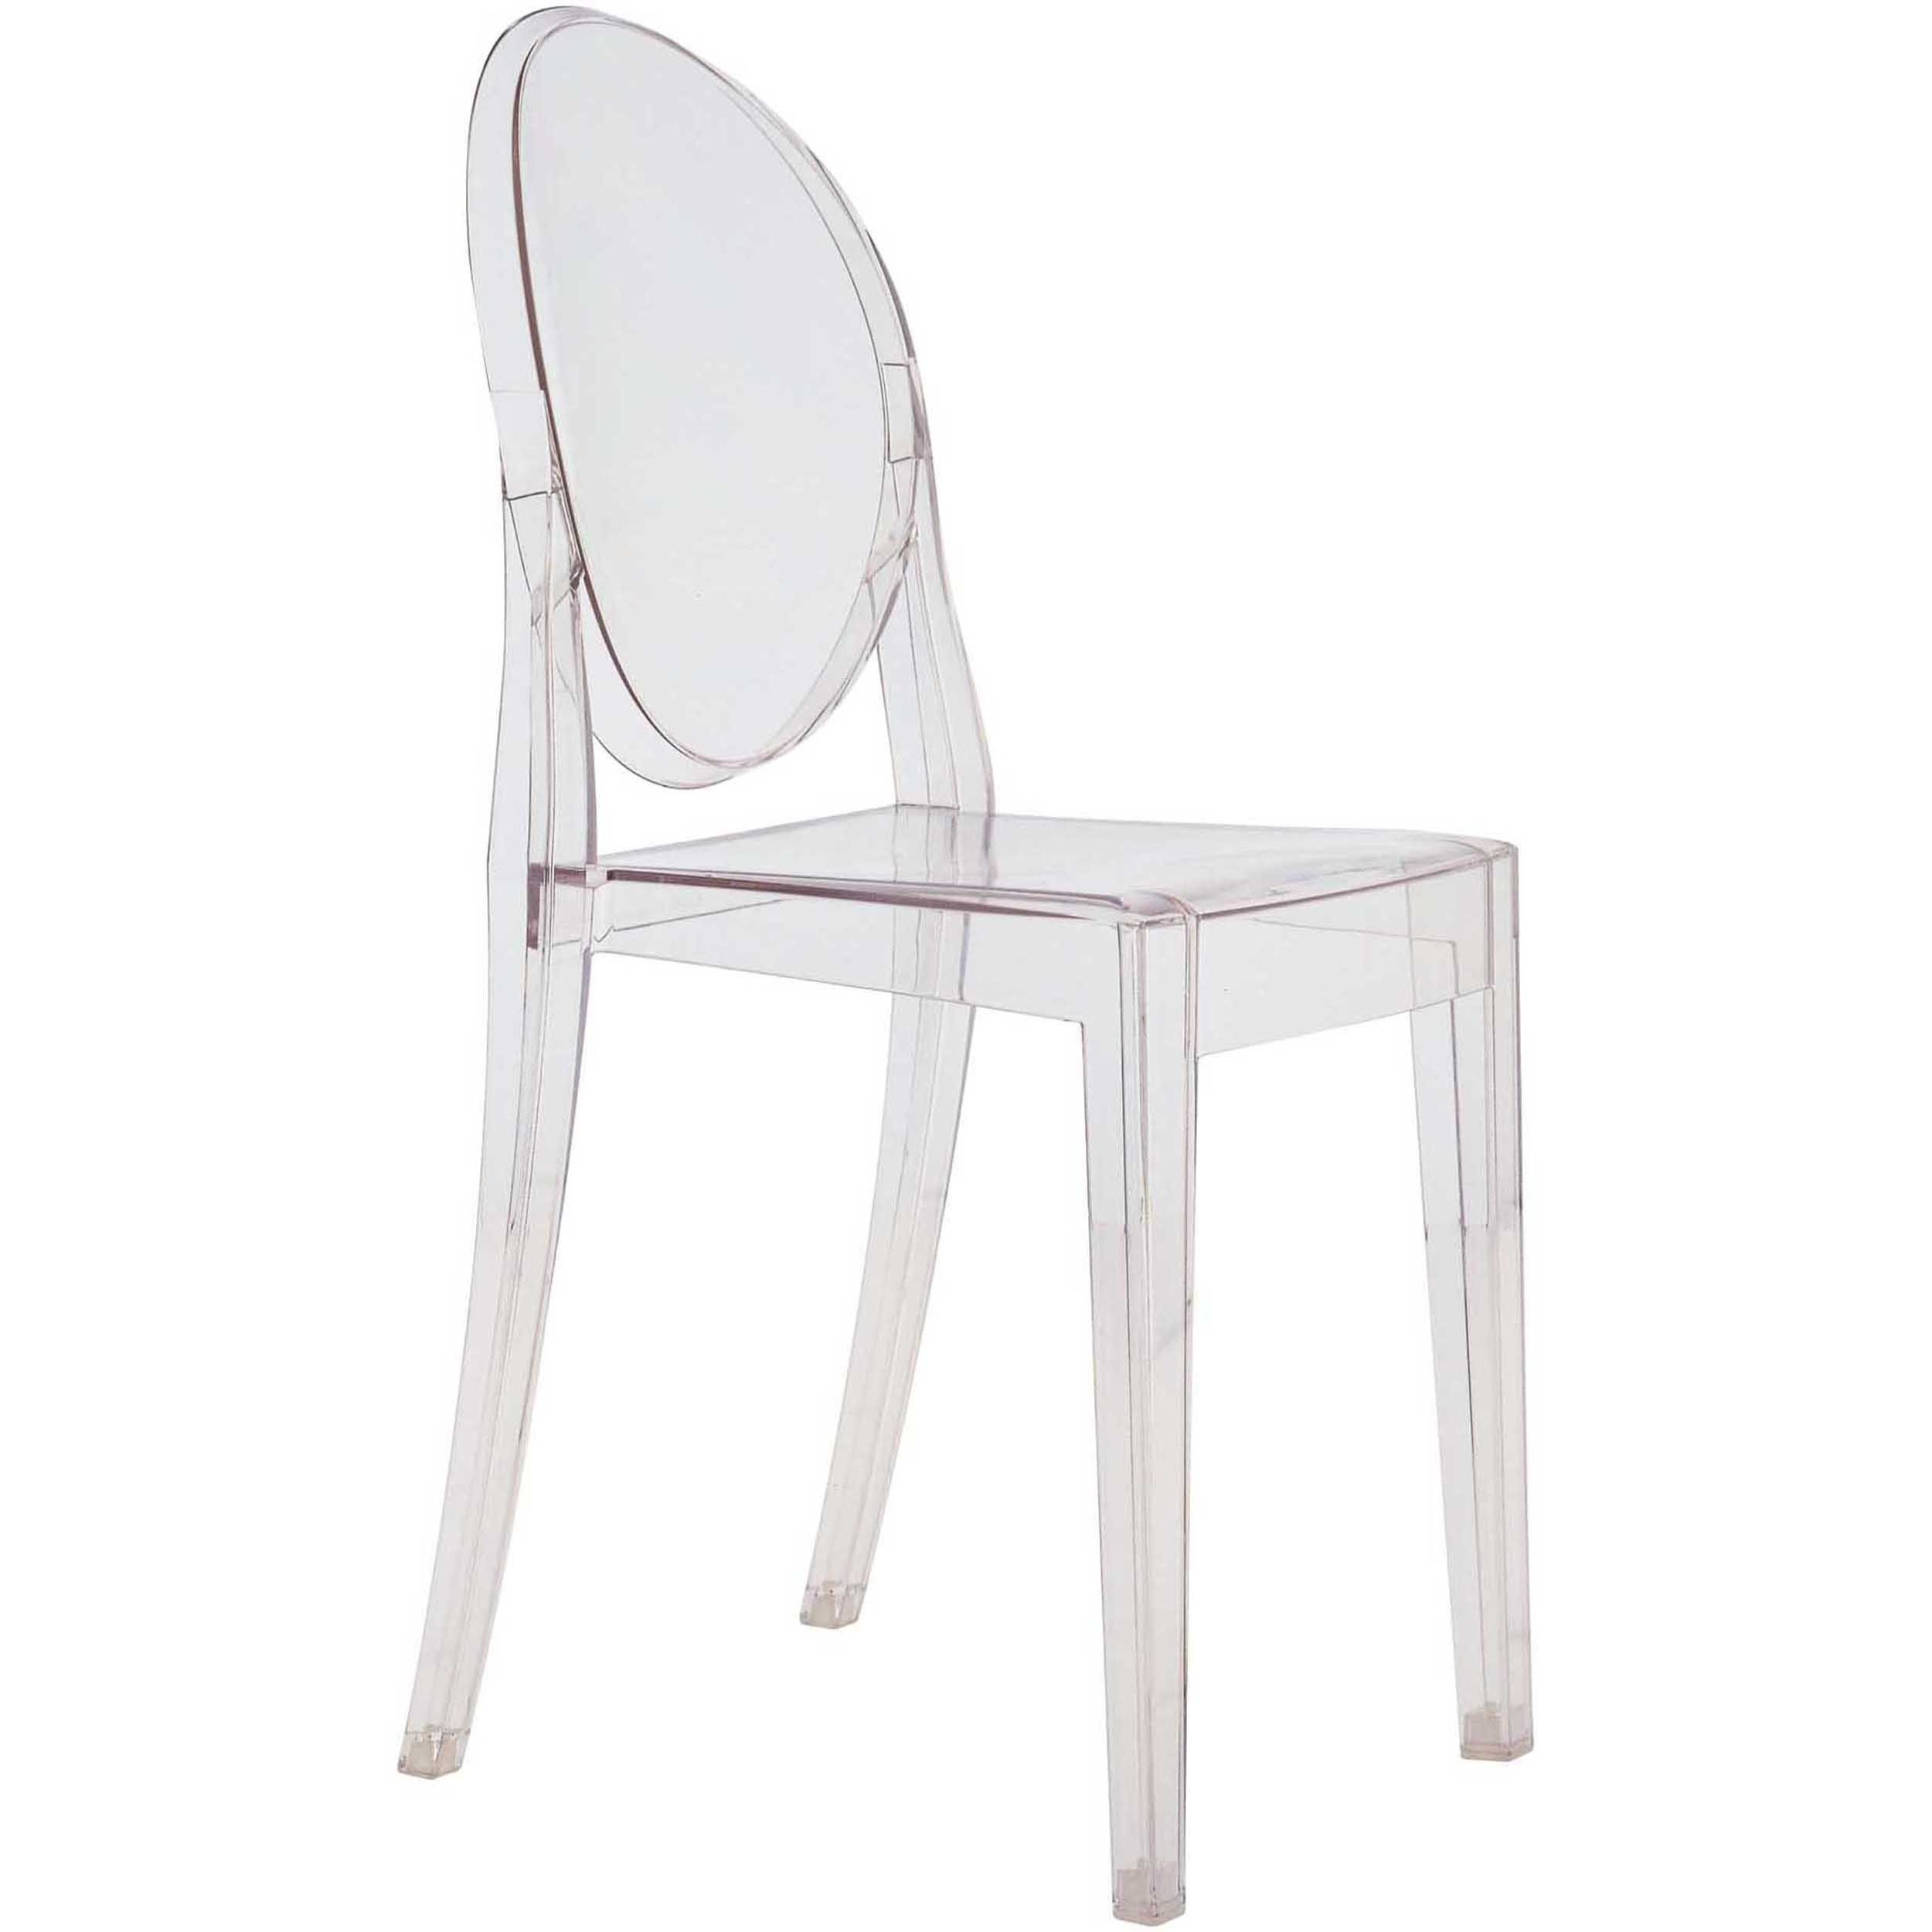 Anime Side Chair Transparent Set Of 4 Acrylic Chair Ghost